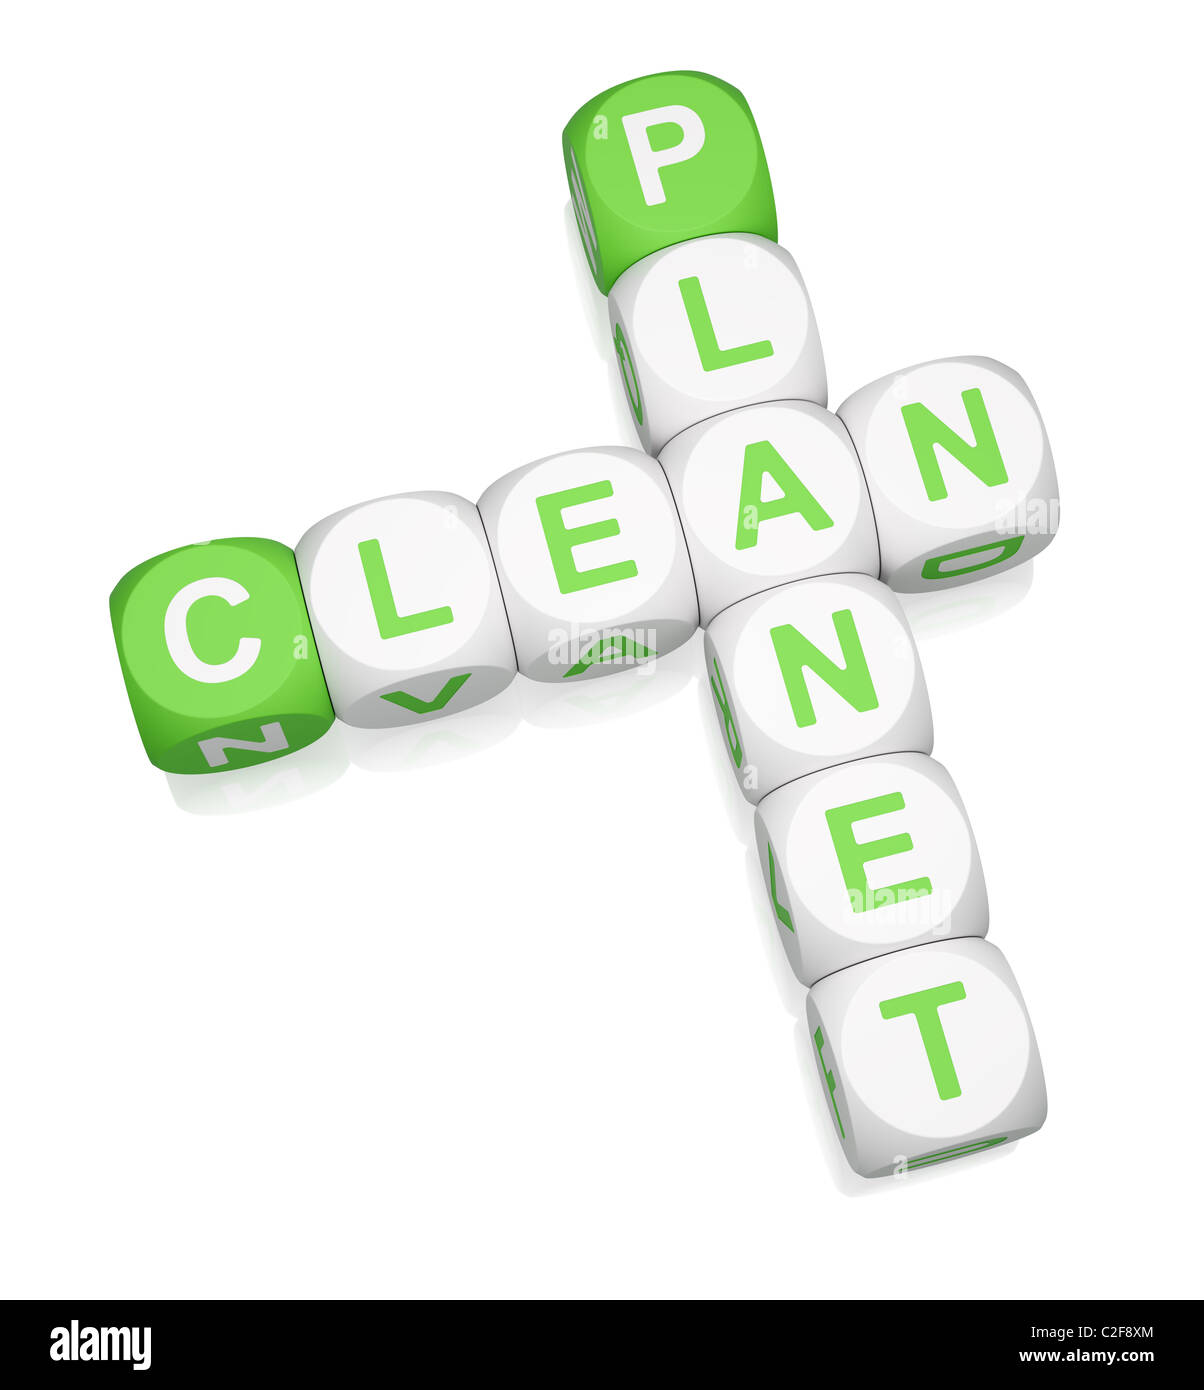 Clean Planet crossword on white background - Stock Image